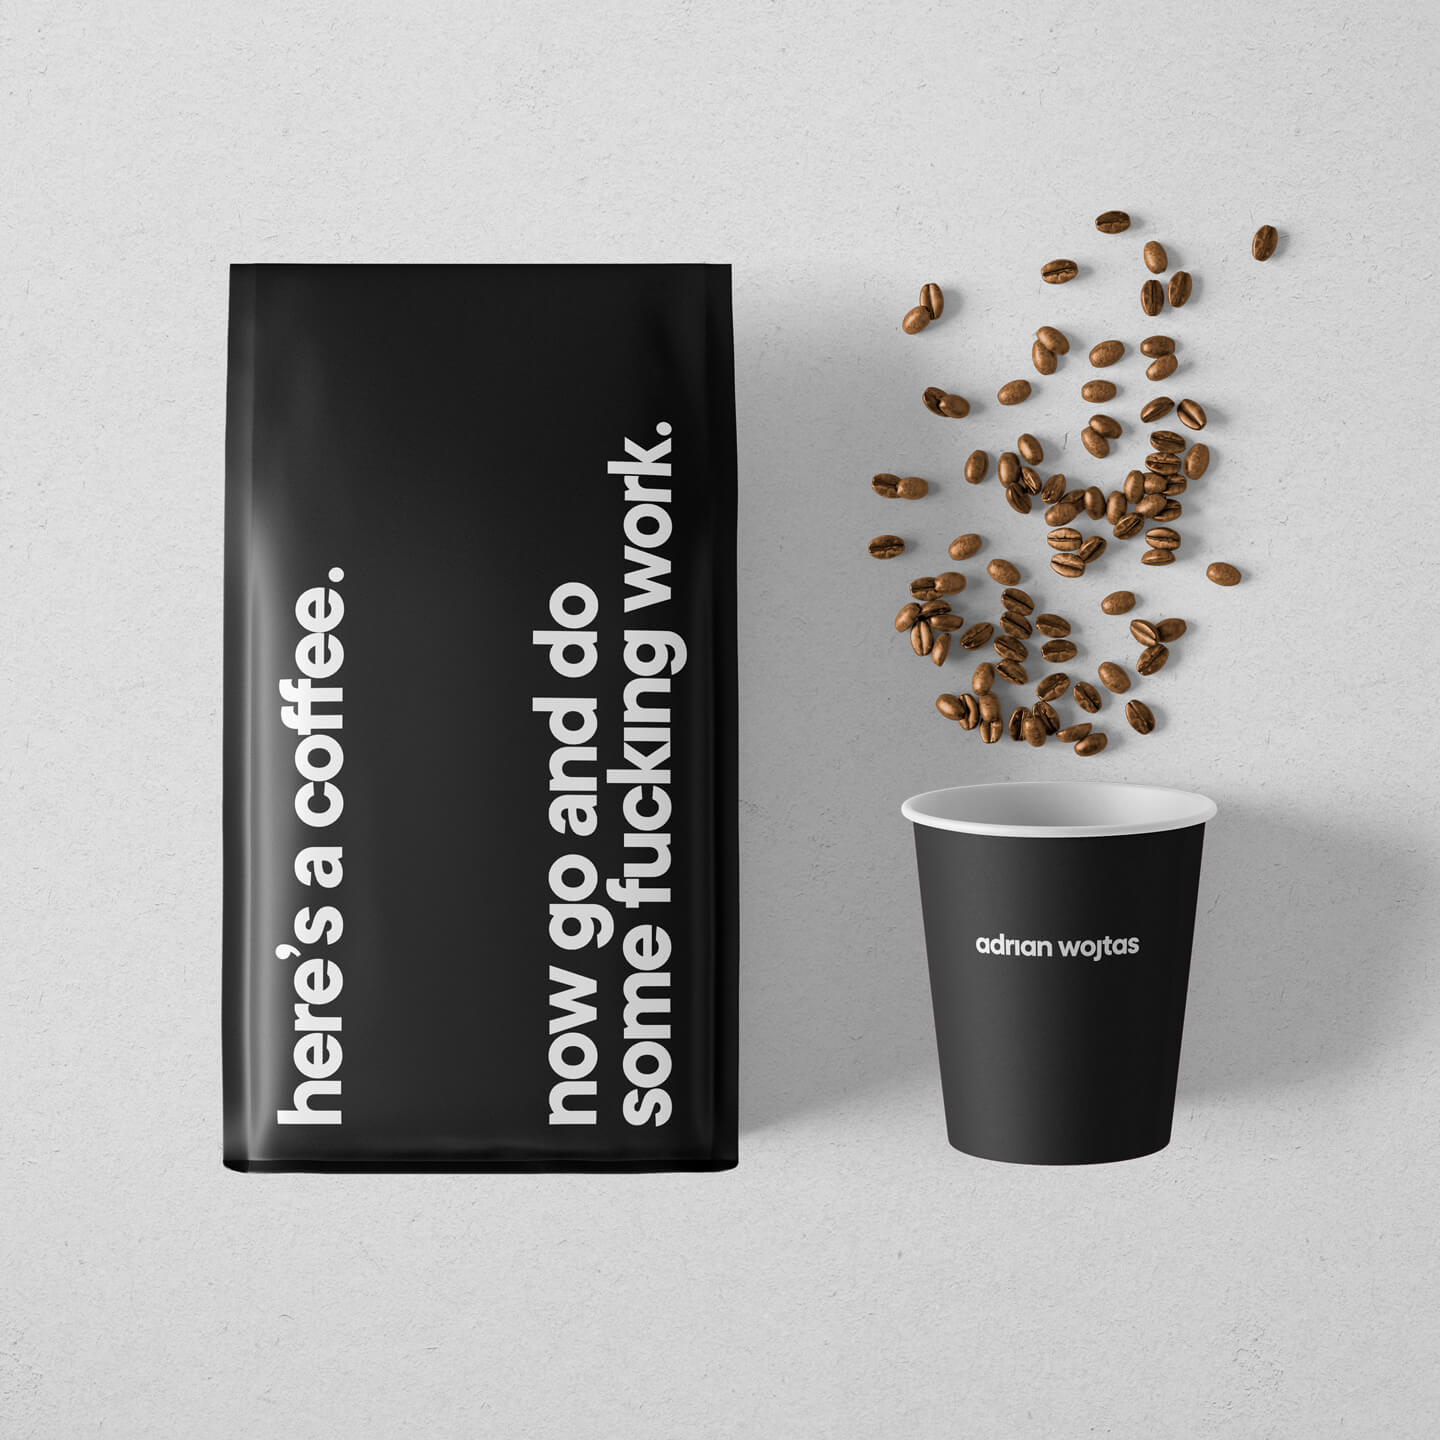 Black bag of whole bean specialty coffee accompanied by a black eco friendly coffee cup with a handful of lightly roasted specialty coffee beans.